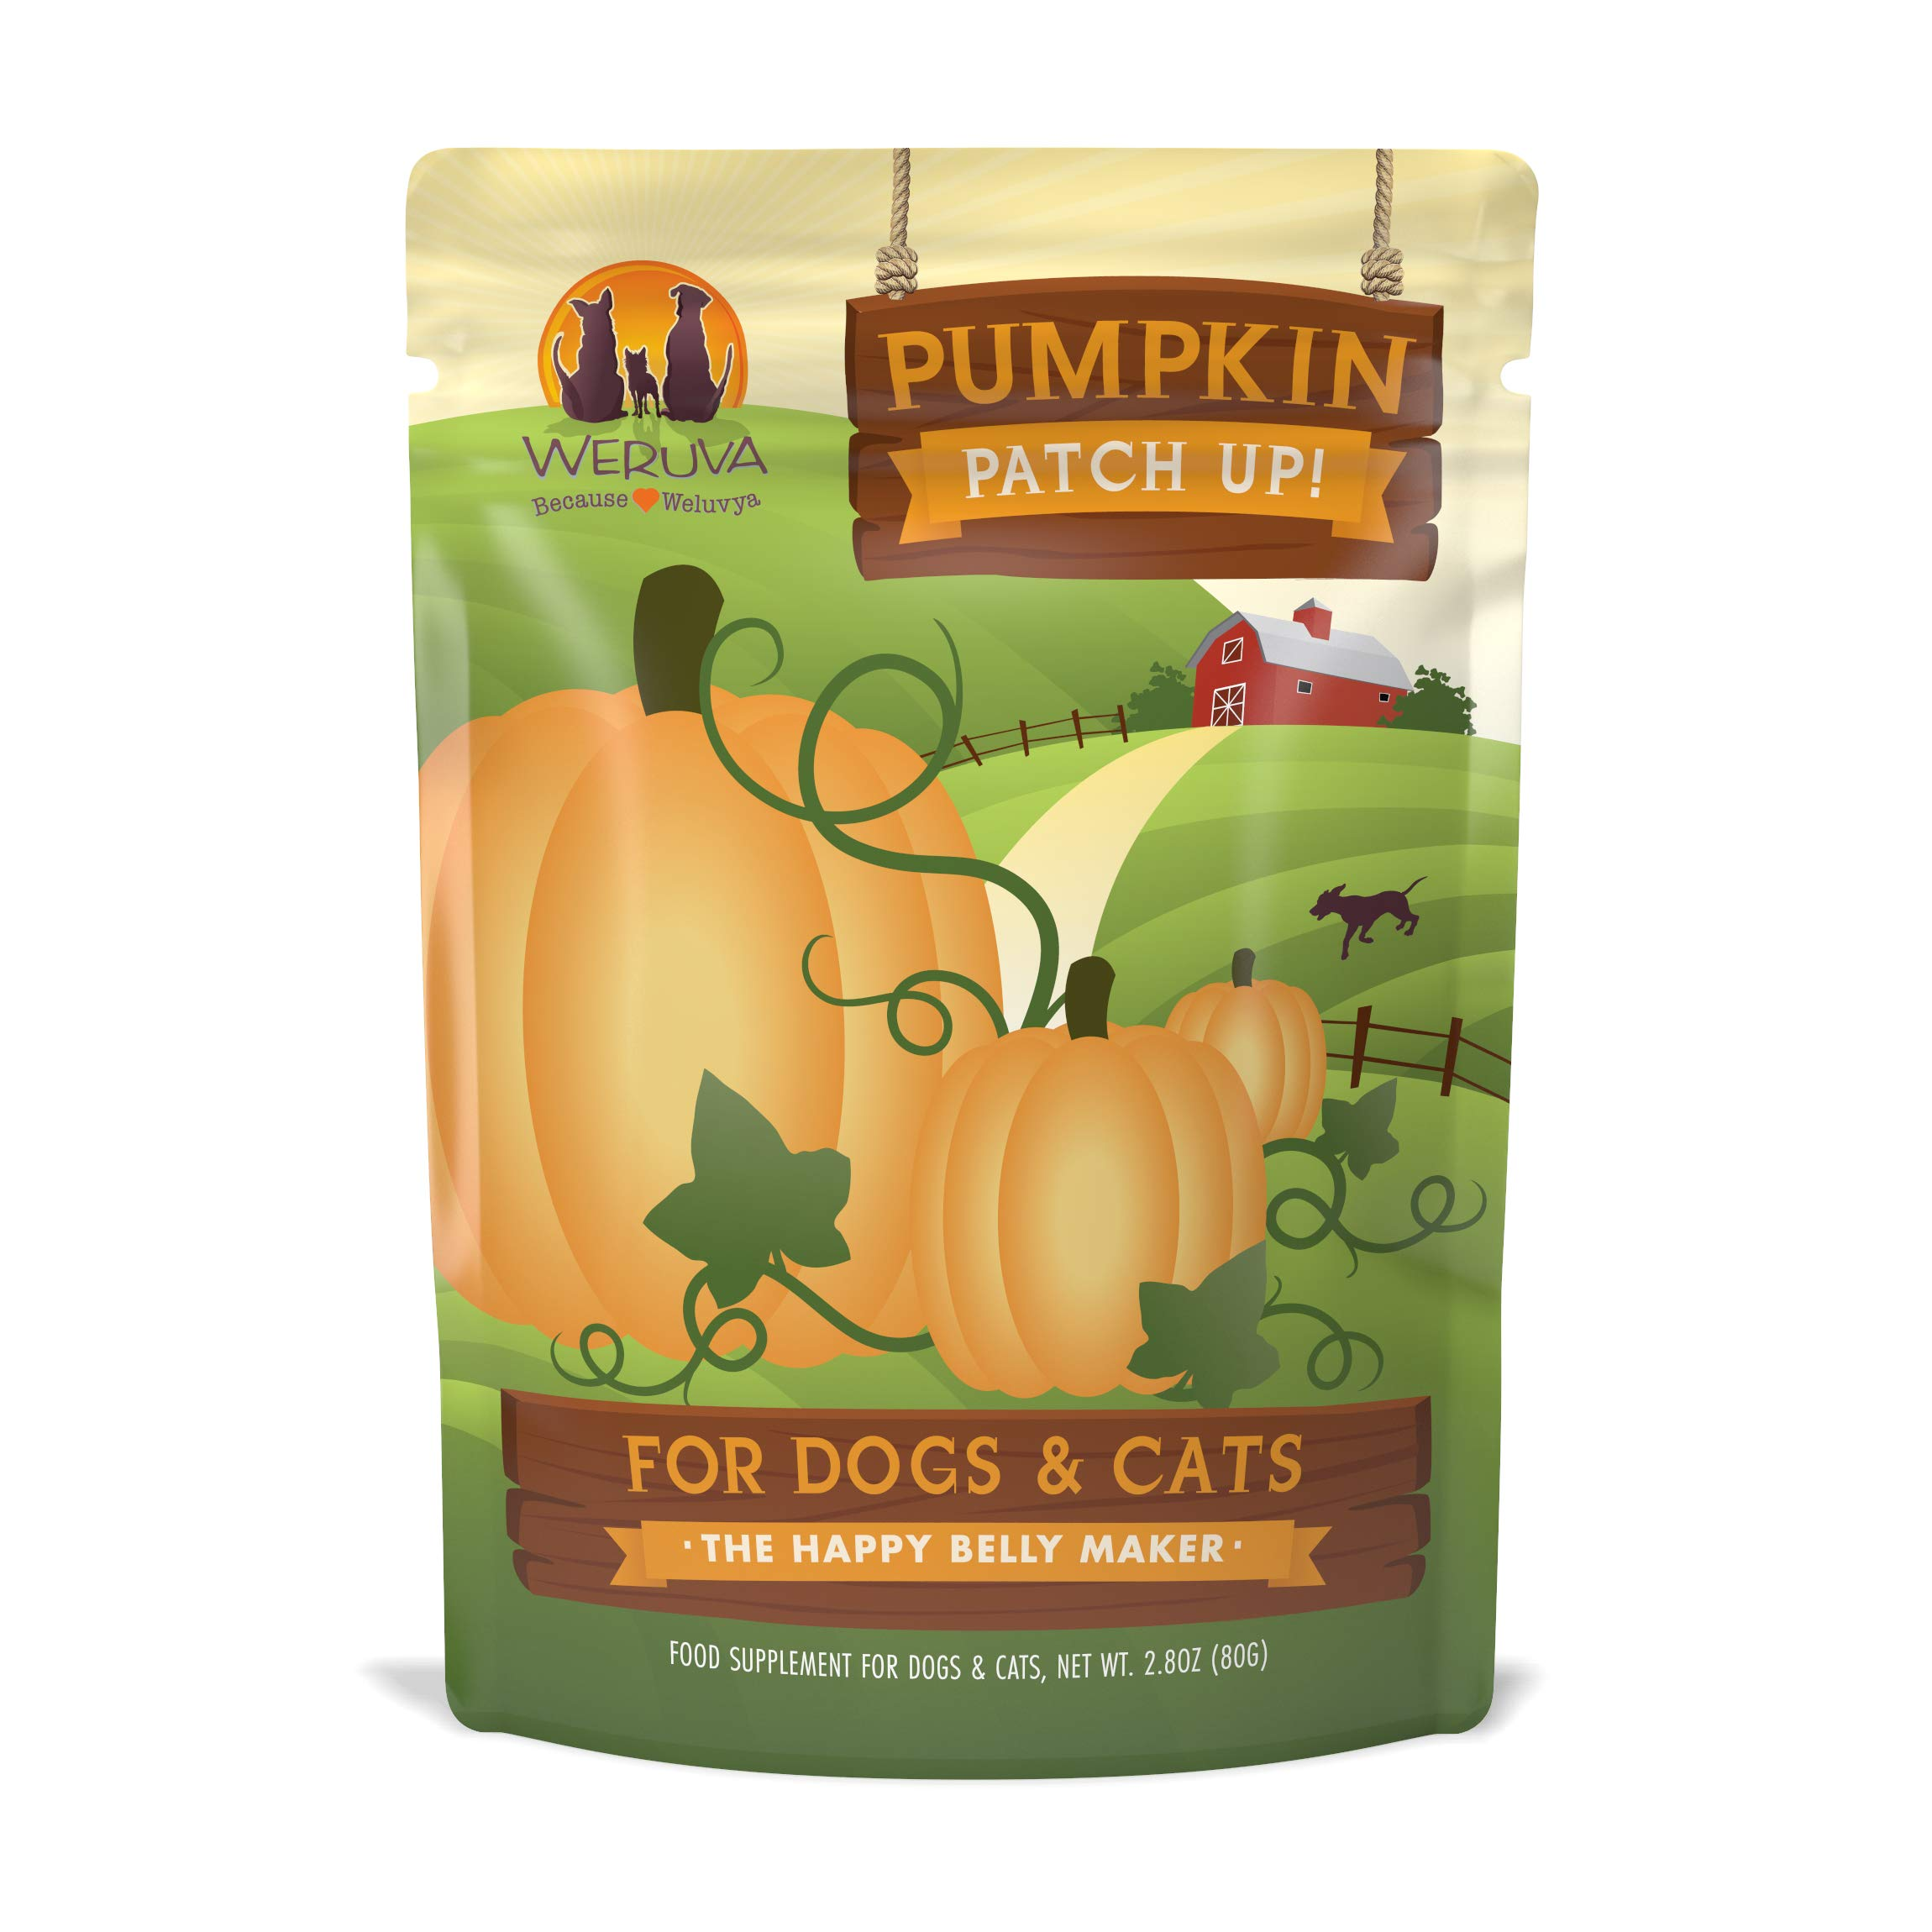 Weruva Pumpkin Patch Up!, Pumpkin Puree Pet Food Supplement For Dogs & Cats, 2.80Oz Pouch (Pack Of 12) by Weruva